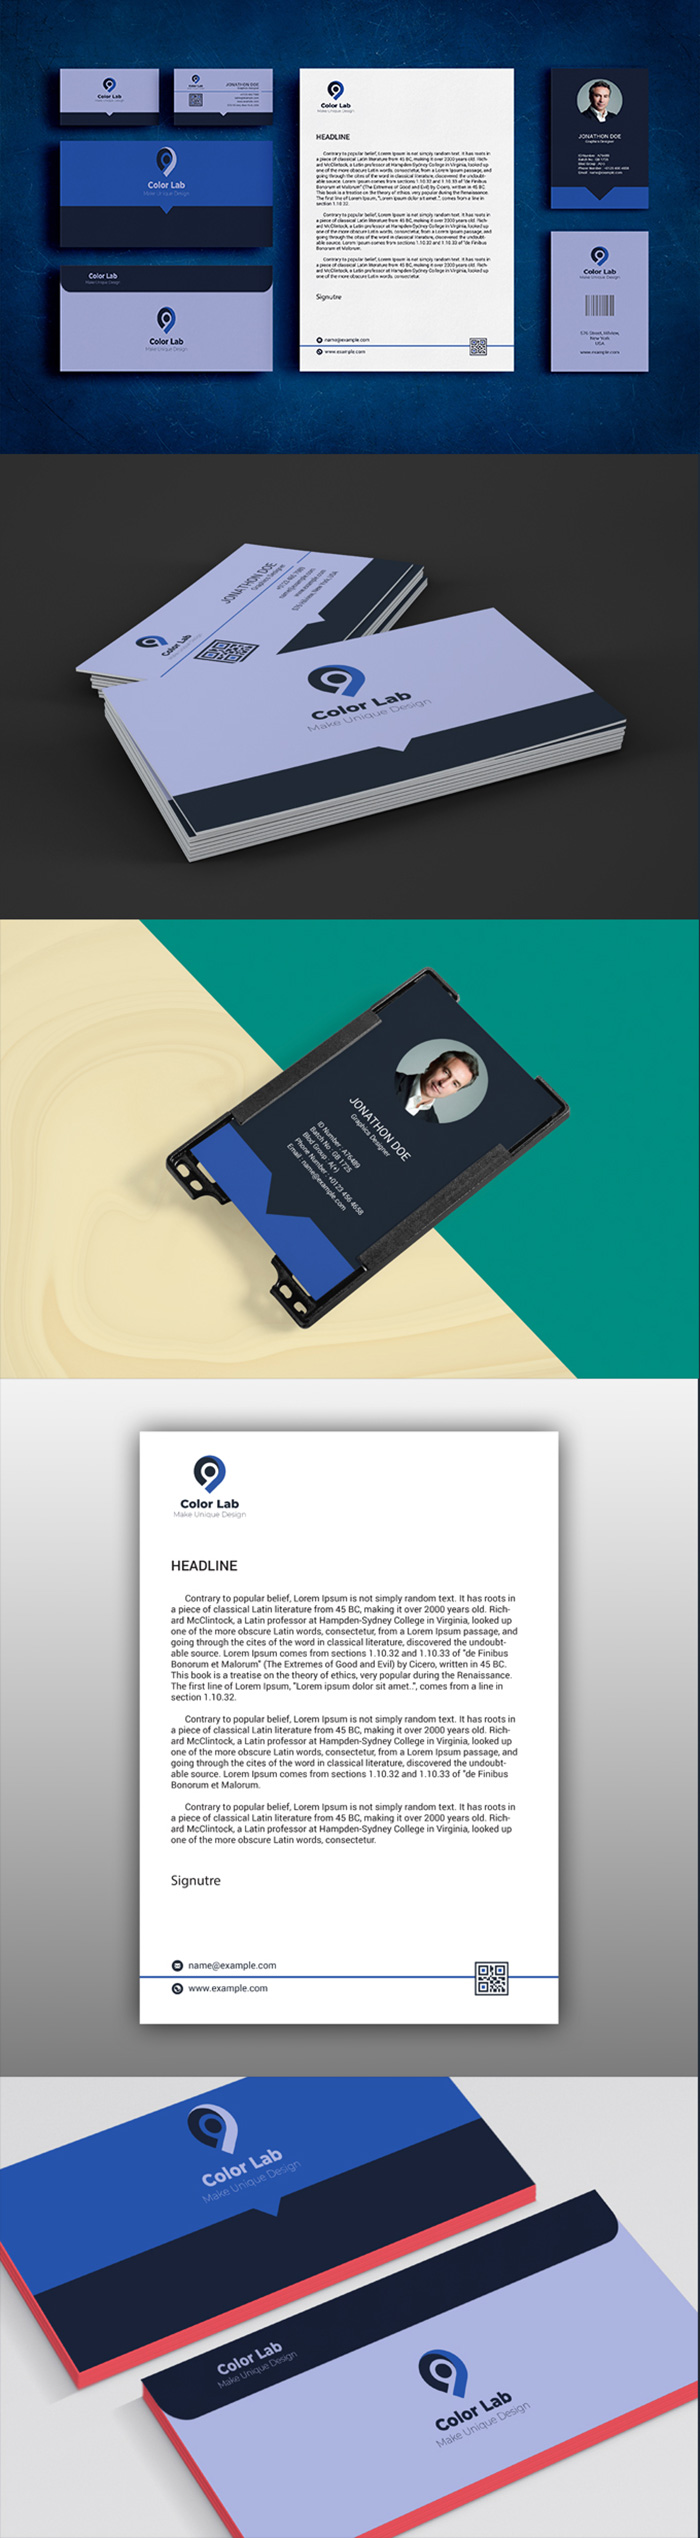 50 Corporate Identities with Extended License - 4